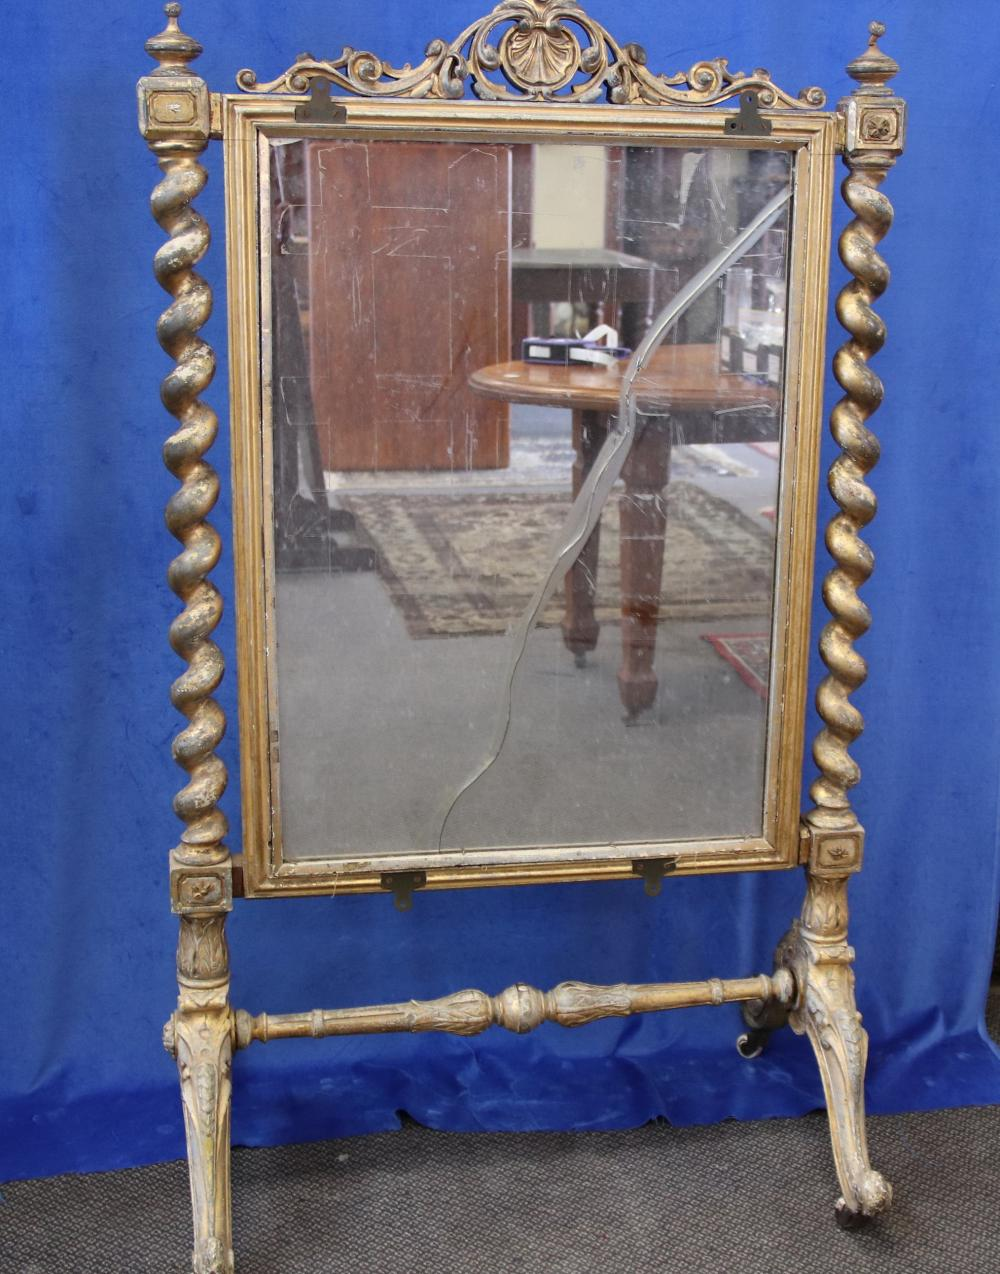 LOUIS XV STYLE FRENCH FIRE SCREEN, GOLD PAINTED, HAND CARVED DECORATIONS WITH BARLEY TWIST COLUMNS TO SIDE, TAPESTRY CENTRE INSERT AND MIRROR INSERT TO REAR, CIRCA 1900'S, MEASURES 81CM W X 140CM H, (DAMAGE TO MIRROR)